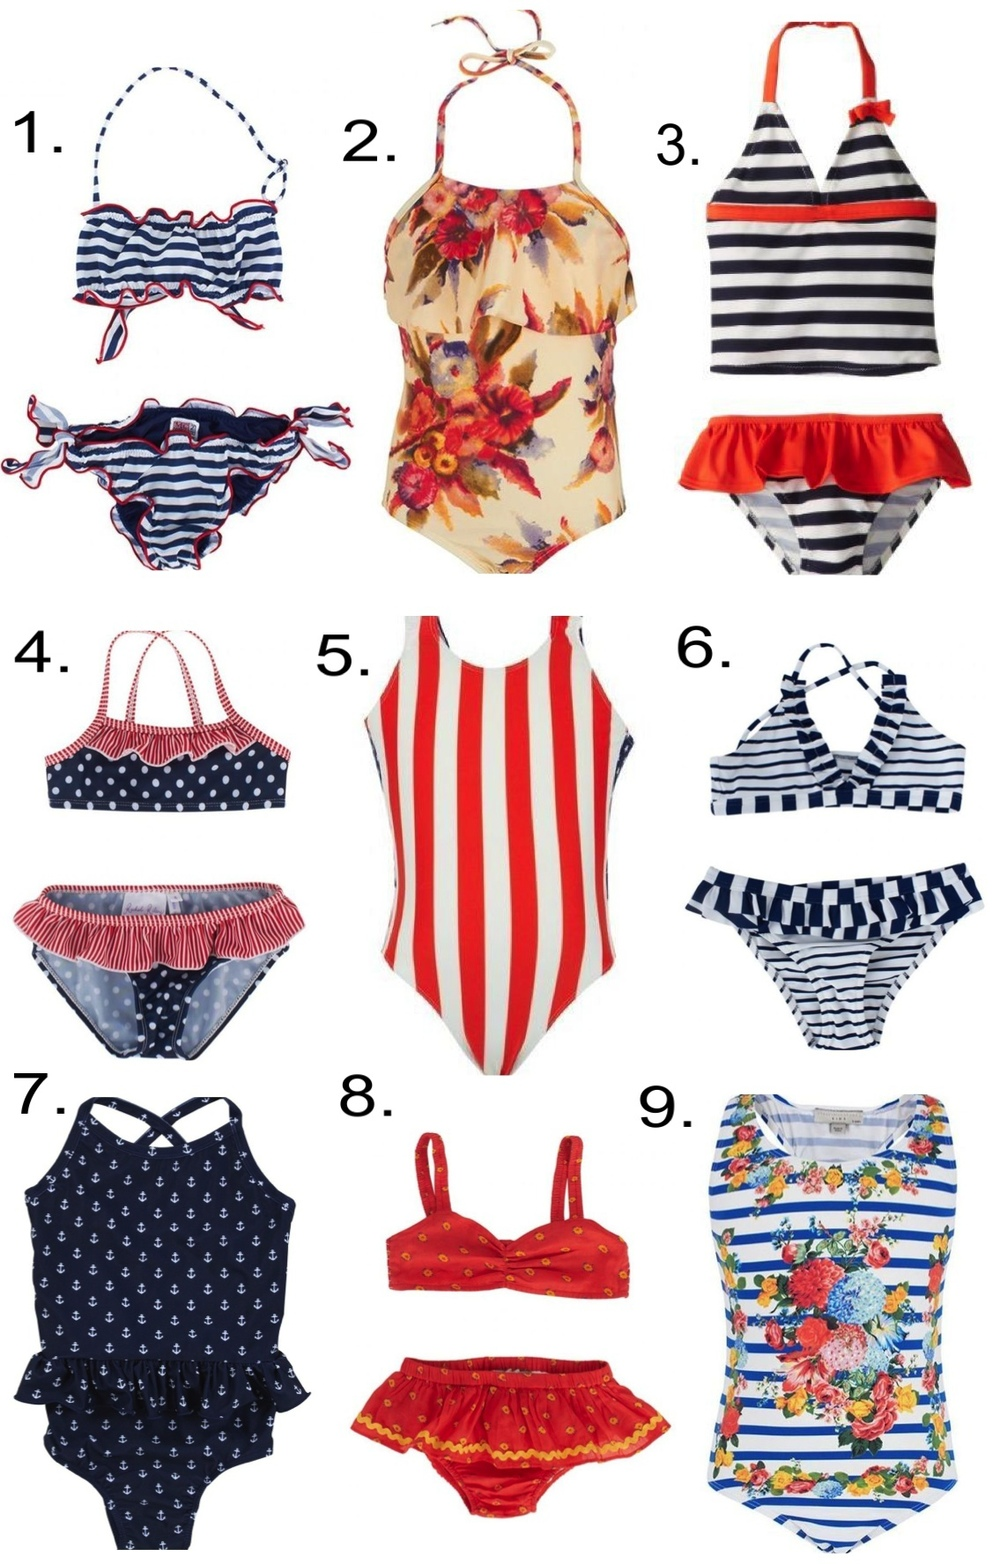 Girls Labor Day Swimsuits... 1. MC2 St Barth Nautical Bandeau Frill Two-Piece $50.00 2. Zimmermann Instinct Flare Halterneck Swimsuit $56.00 3. Osh Kosh Little Girls' Girls' 2 Piece Striped Tankini $26.93 - $27.17  4. Rachel Riley Navy Polka Dot & Stripe Bikini $43.00 5. Finger In The Nose American Flag Swimsuit $40.00 6. Melissa Odabash Navy Frill Stripe Bikini $64.50 7. Egg by Susan Lazar Crisscross Back Swimsuit (Toddler/Kid) $24.20 (Baby) $40.00 + 20% off with code: LOVEFF14 8. Stella McCartney Kids Coral Cotton Two-Piece $53.50 9. Stella McCartney Kids Blue And White Stripe Flower Swimsuit $46.00